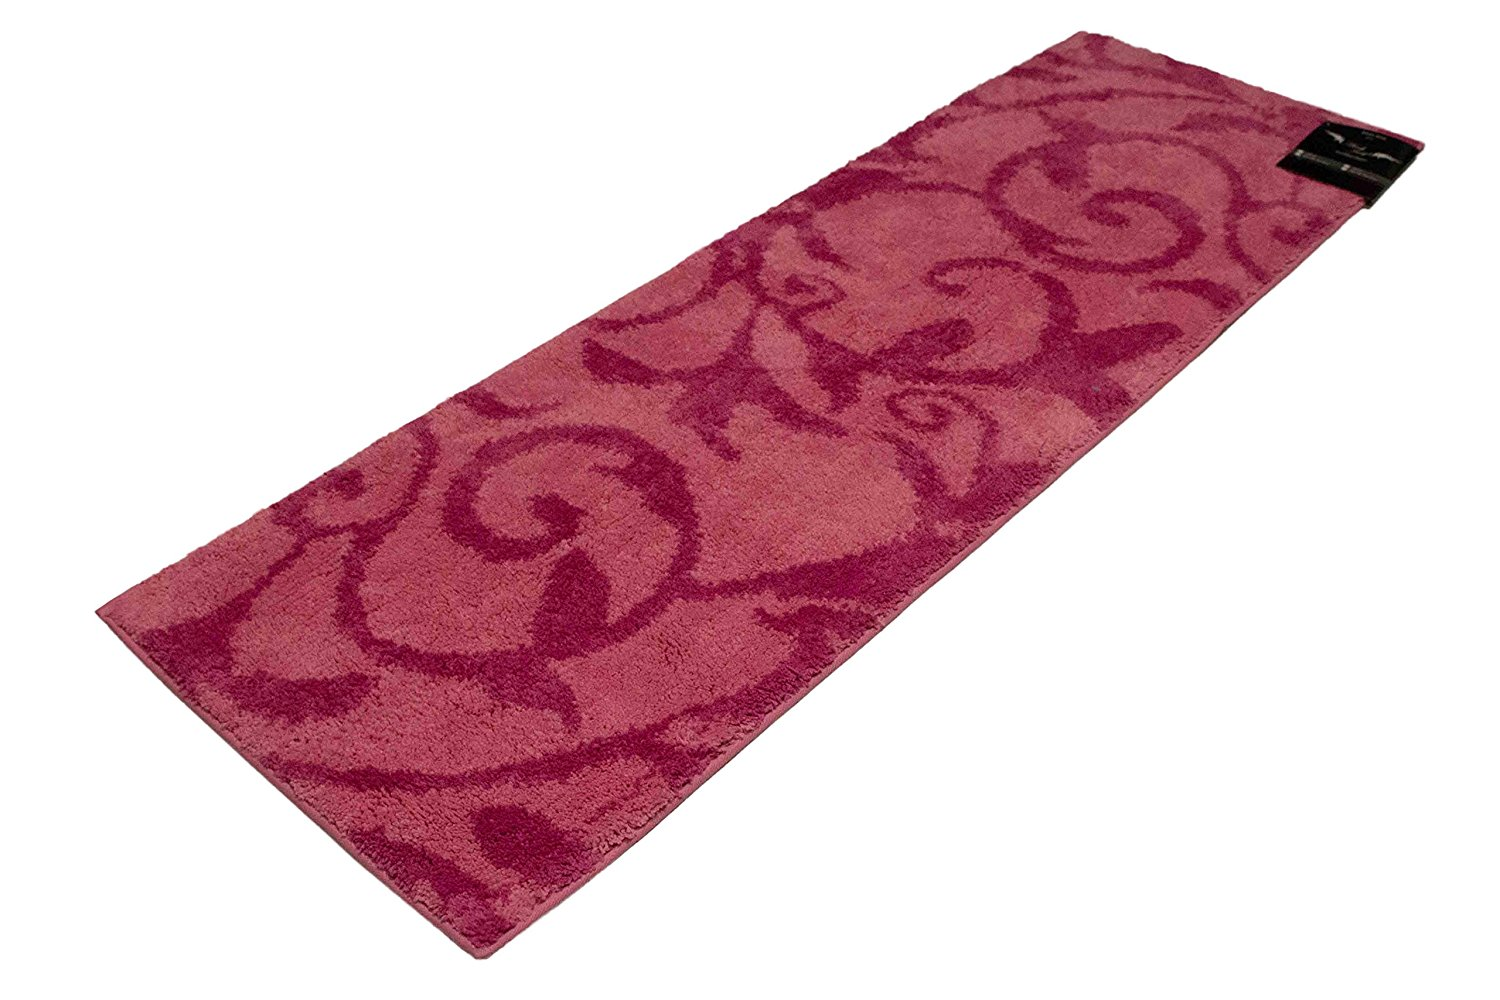 blue tapete from pink para microfiber home oval banheiro bathroom non mat rugs floor bath slip red style item soft carpet pastoral mats in rug